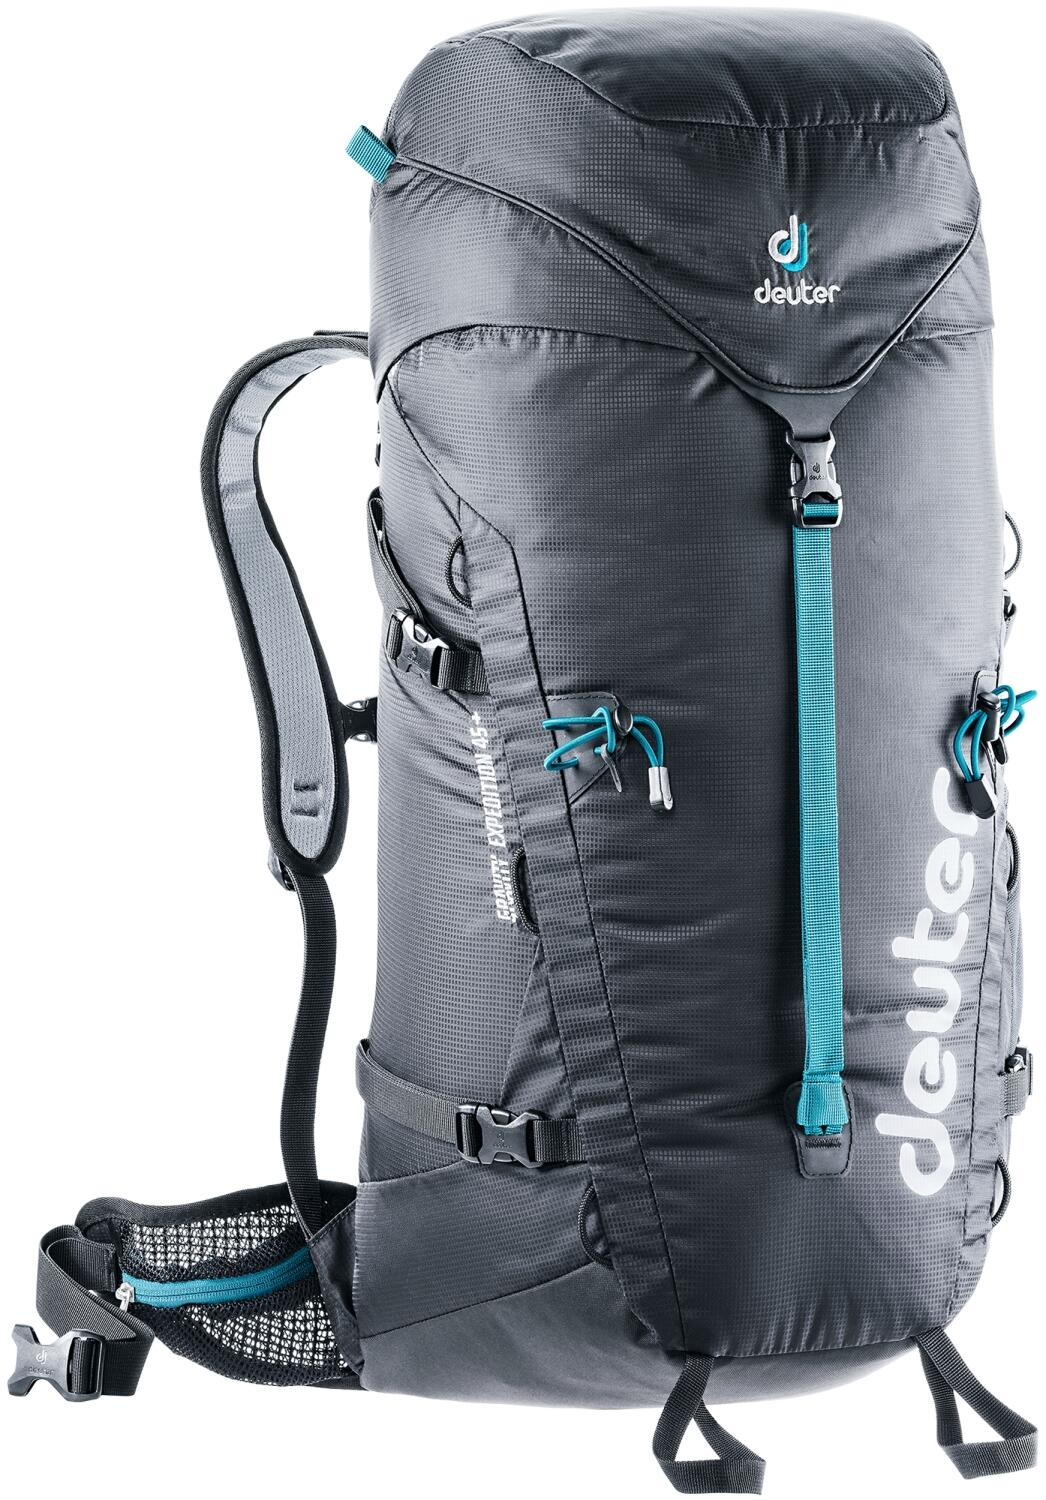 Deuter Gravity Expedition 45 Rucksack (Farbe: 7000 black)